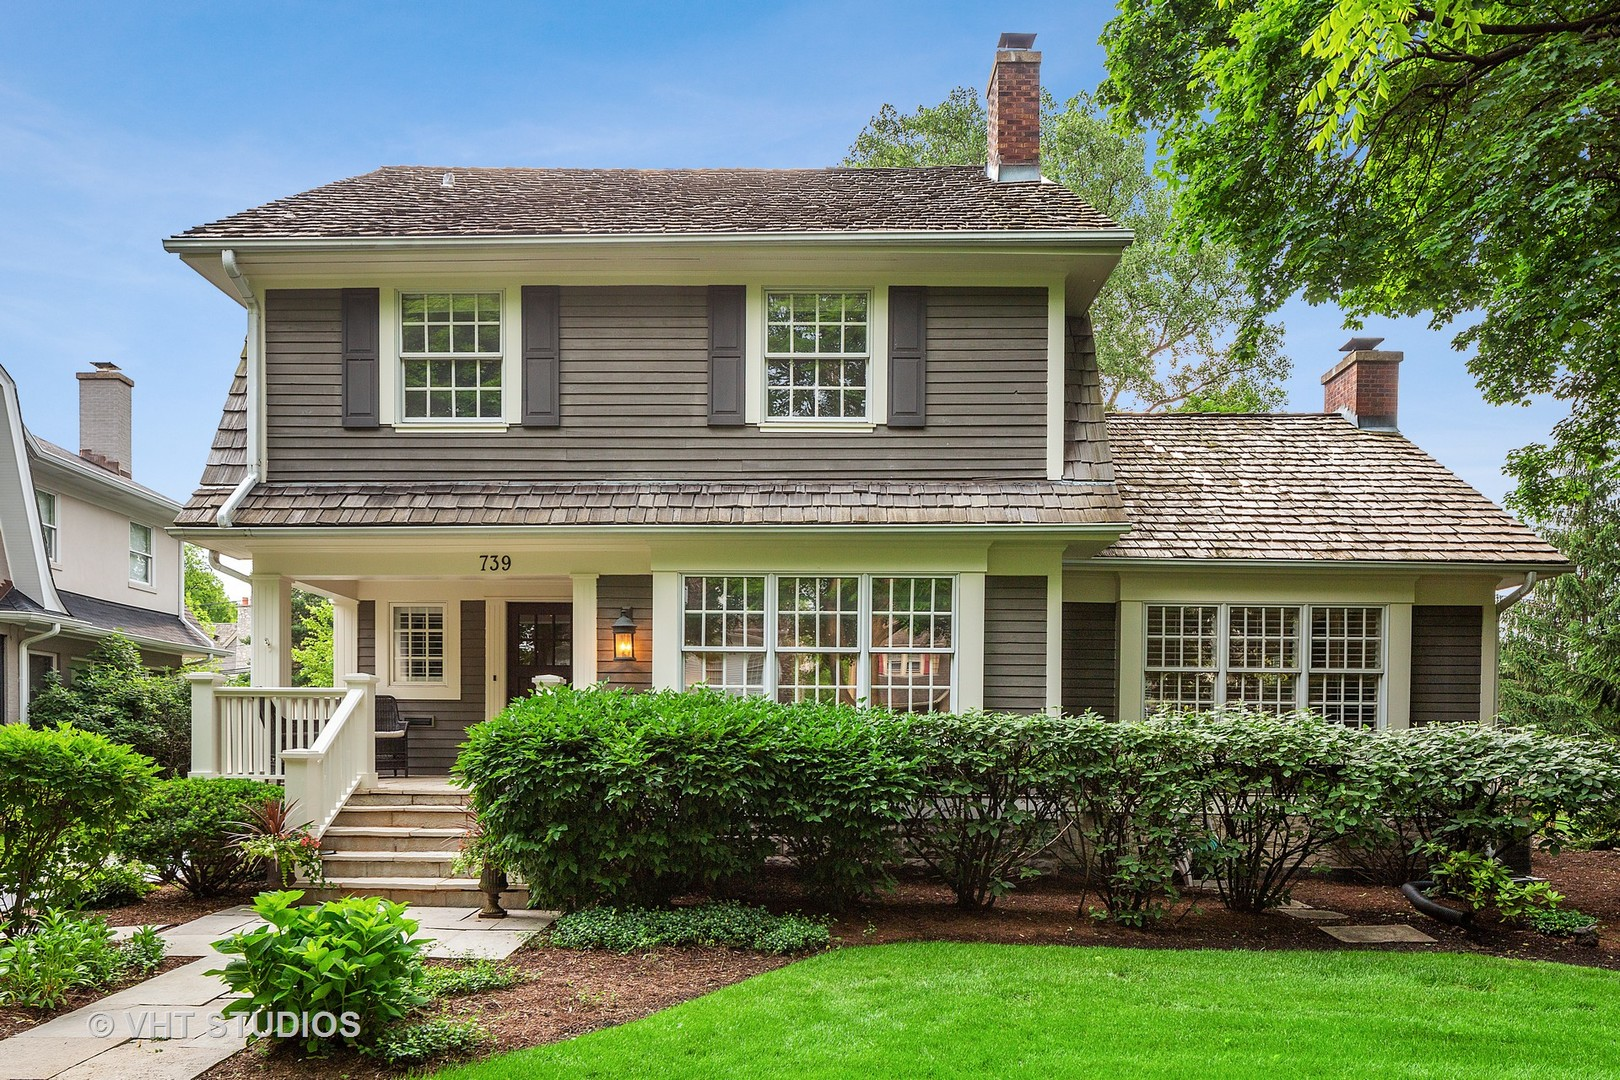 739 South Lincoln, Hinsdale, Illinois, 60521